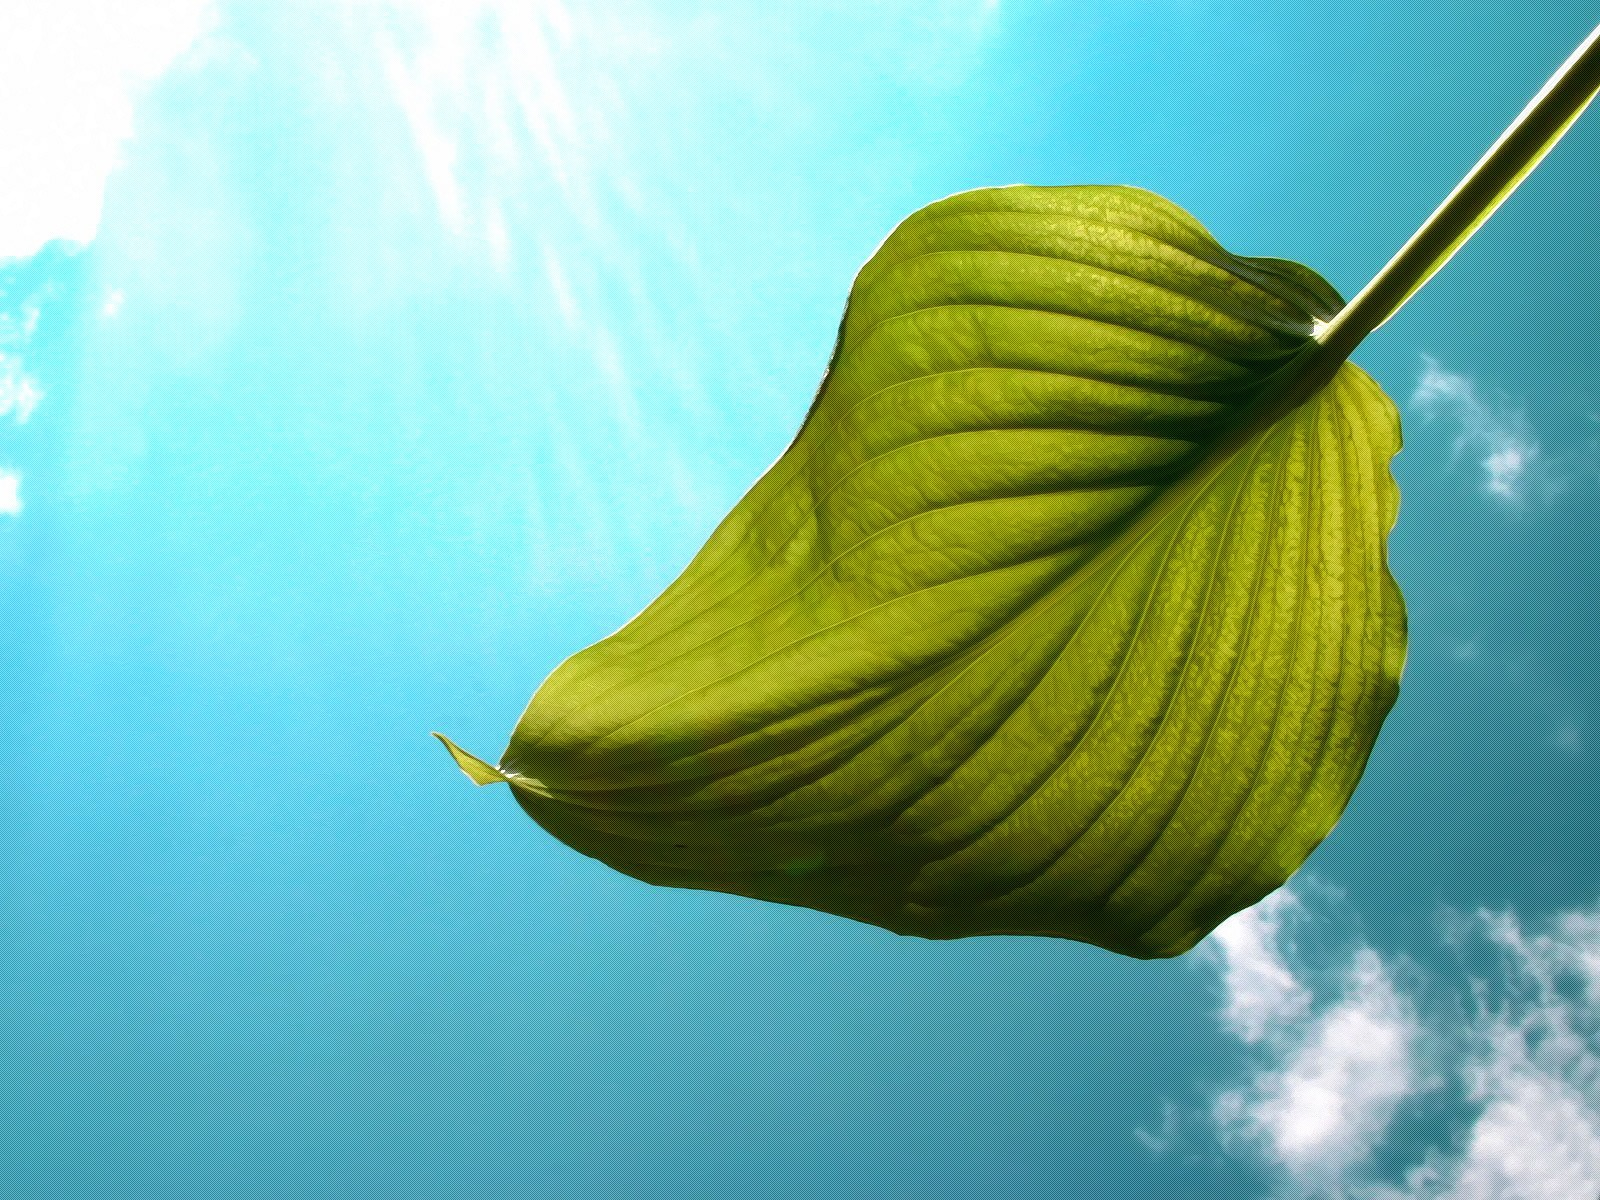 Flying Leaf Wallpaper Other Nature Wallpapers in jpg format for free